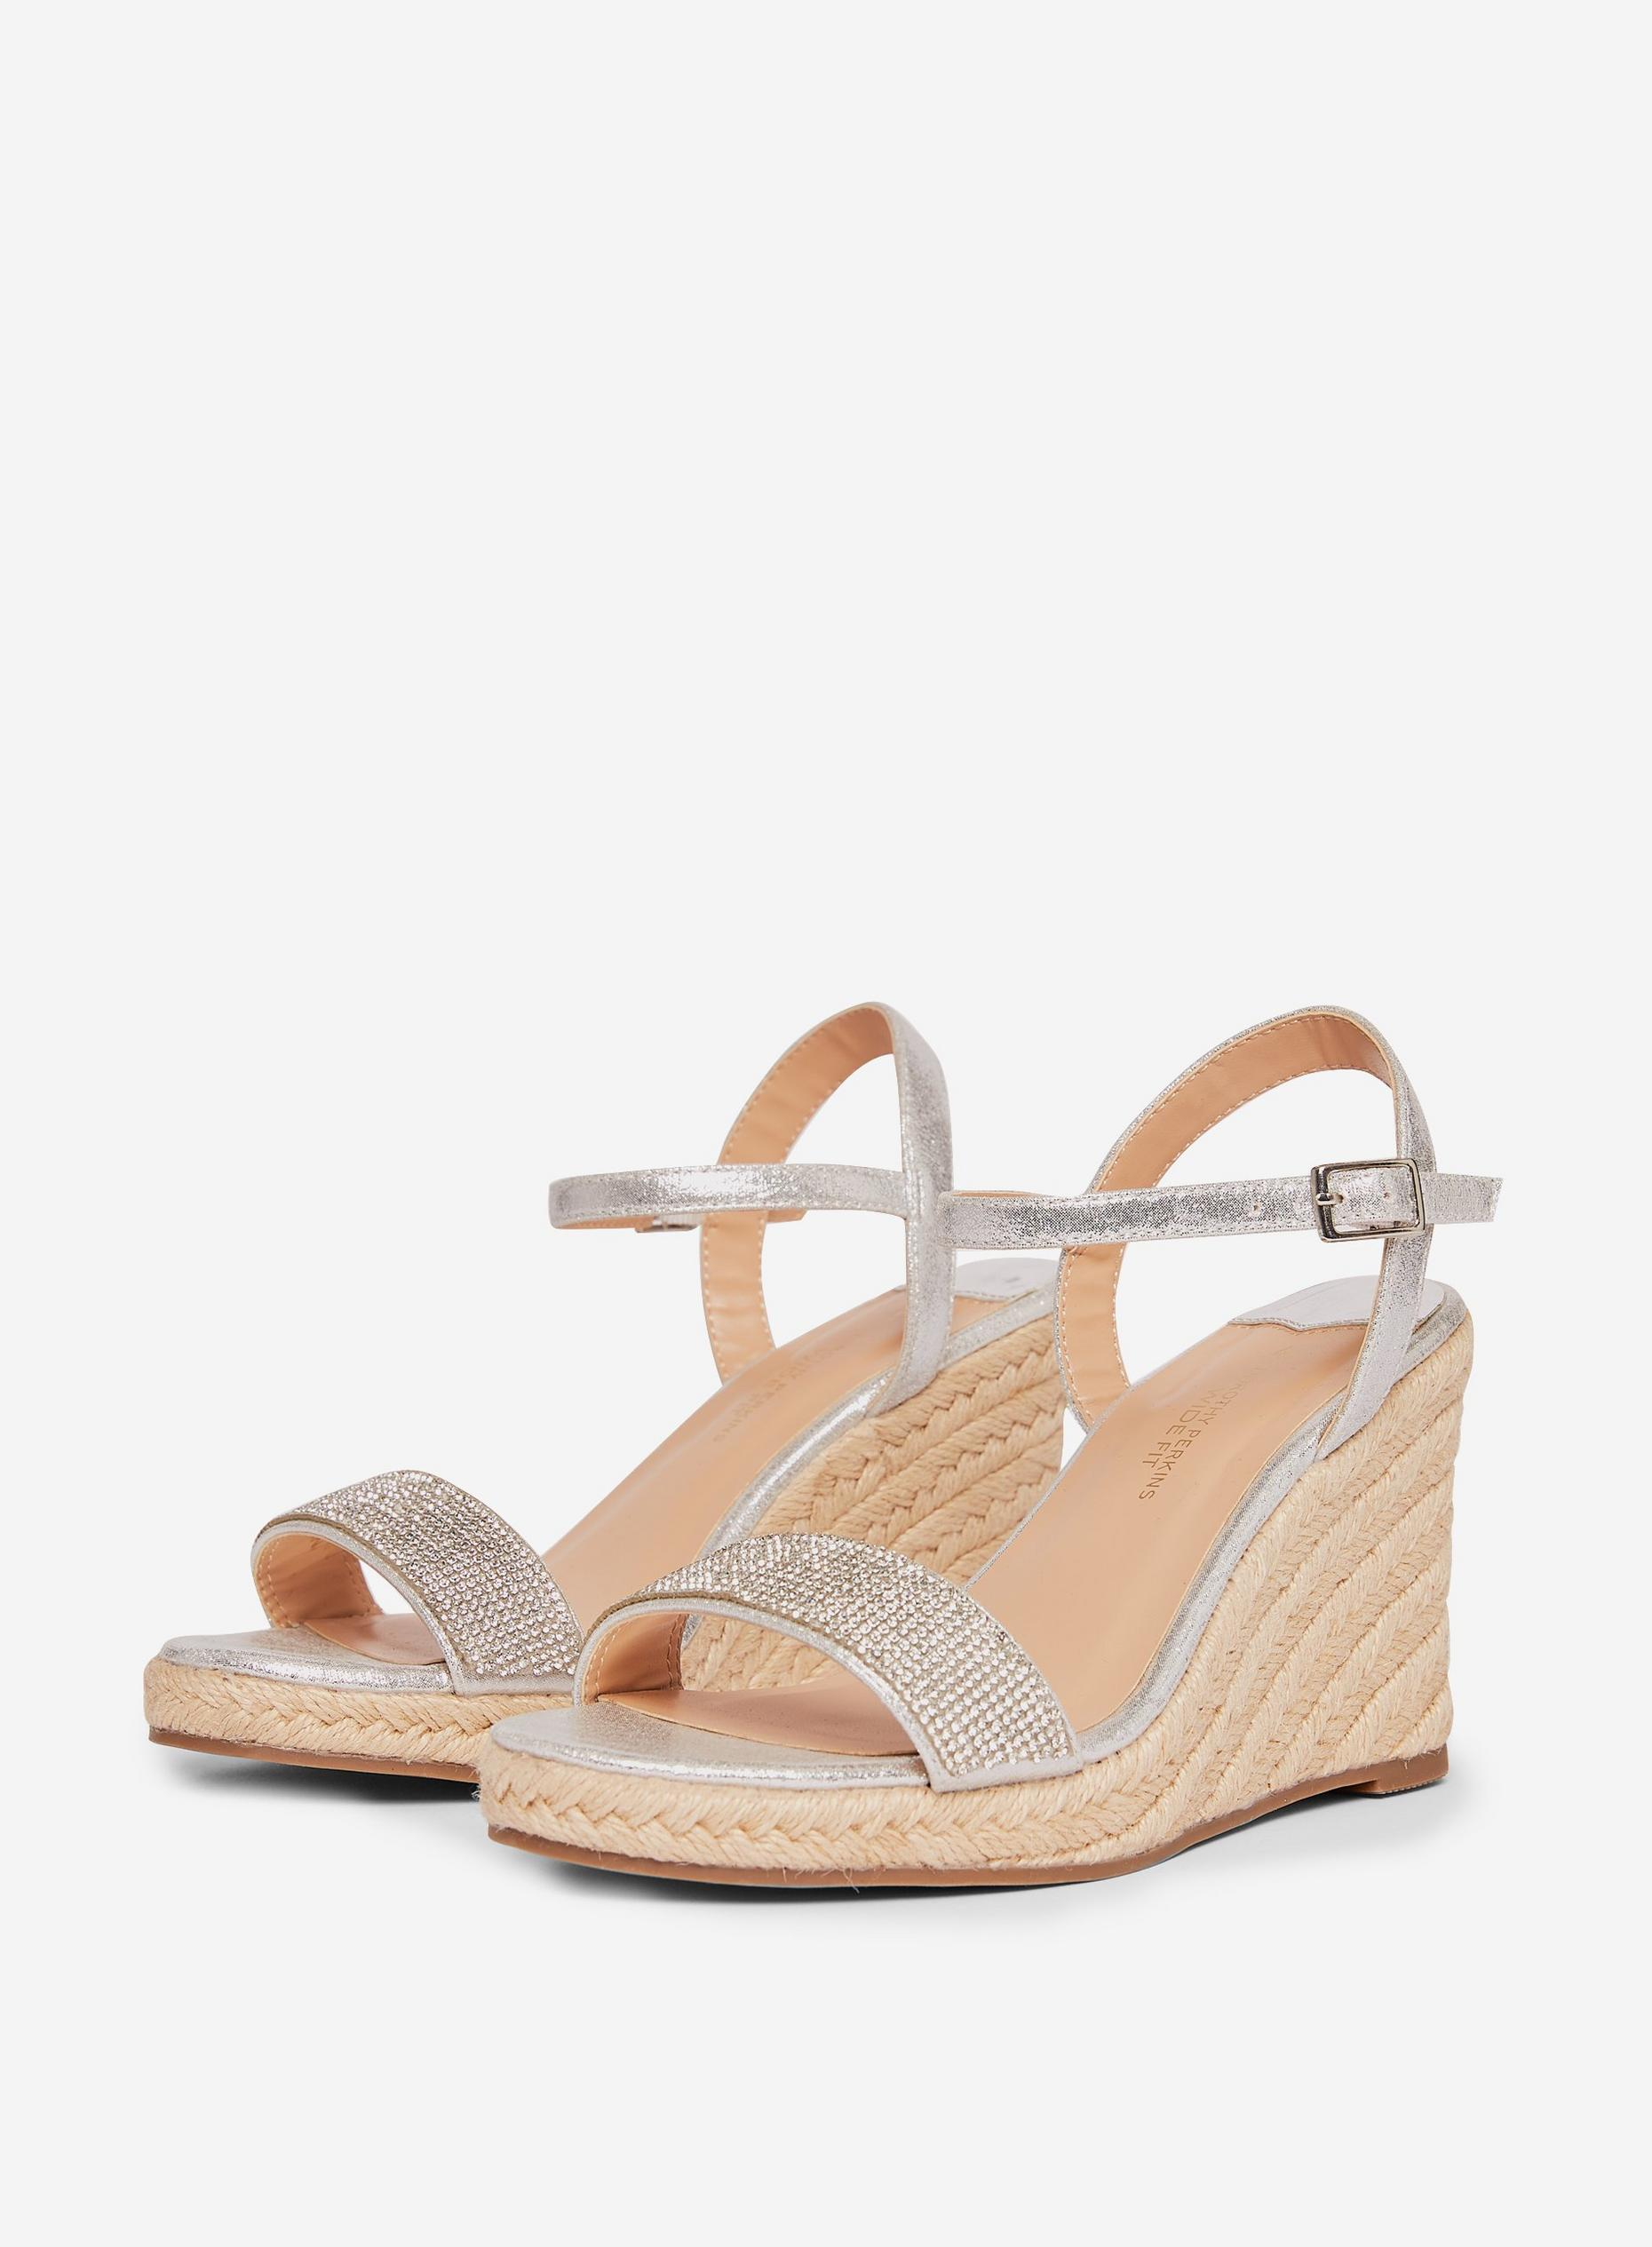 Grey Raa-Raa Wedge Sandals